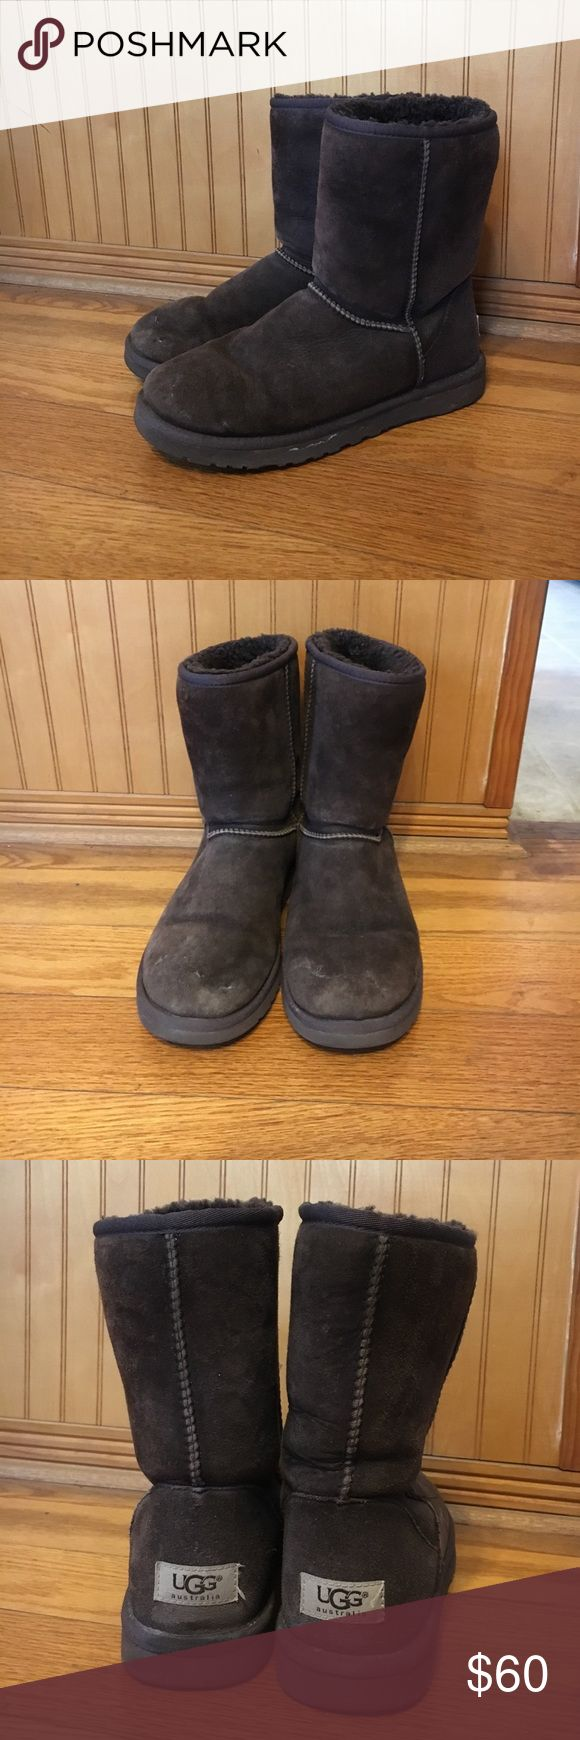 Classic short chocolate brown UGG Australia boots These UGG boots are super warm and comfortable and aren't loose at all by any means. The chocolate brown color goes with everything and they are a great fall/winter item to have! UGG Shoes Winter & Rain Boots